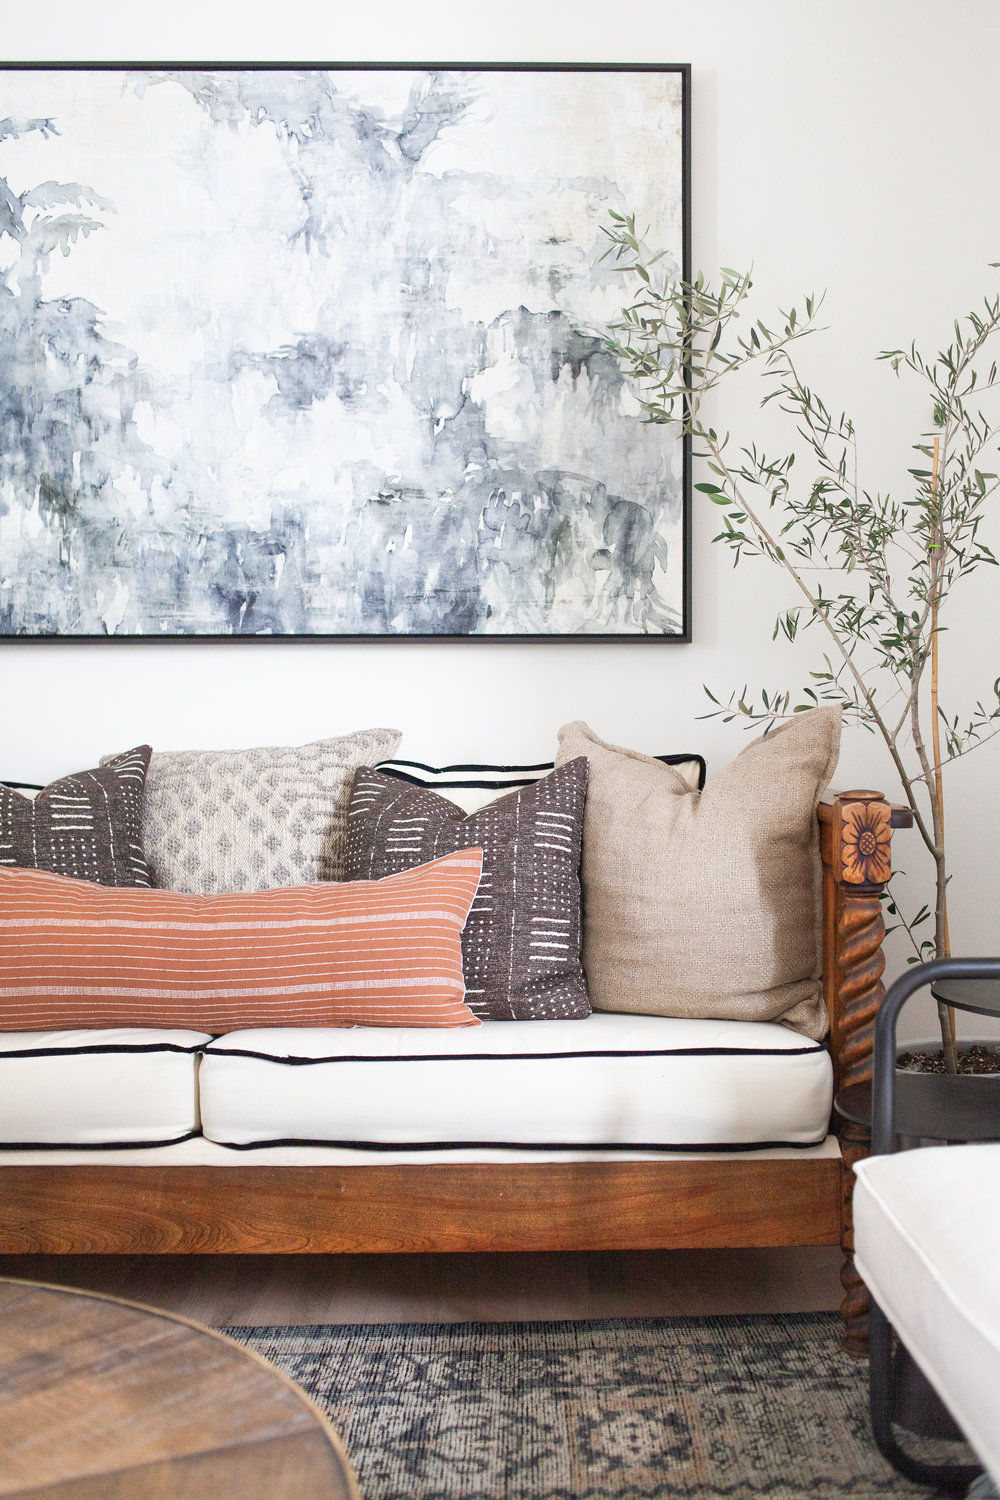 SHOP THE LOOK   |   Pacha Lumbar Pillow in Terra-Cotta    ($250.00),    Taupe Cotton & Wool Pillow    ($119.00),    Bone/Charcoal Heirloom Rug    ($738.00 - $4,018.00),    A Curious Place Framed Artwork    ($462.00)